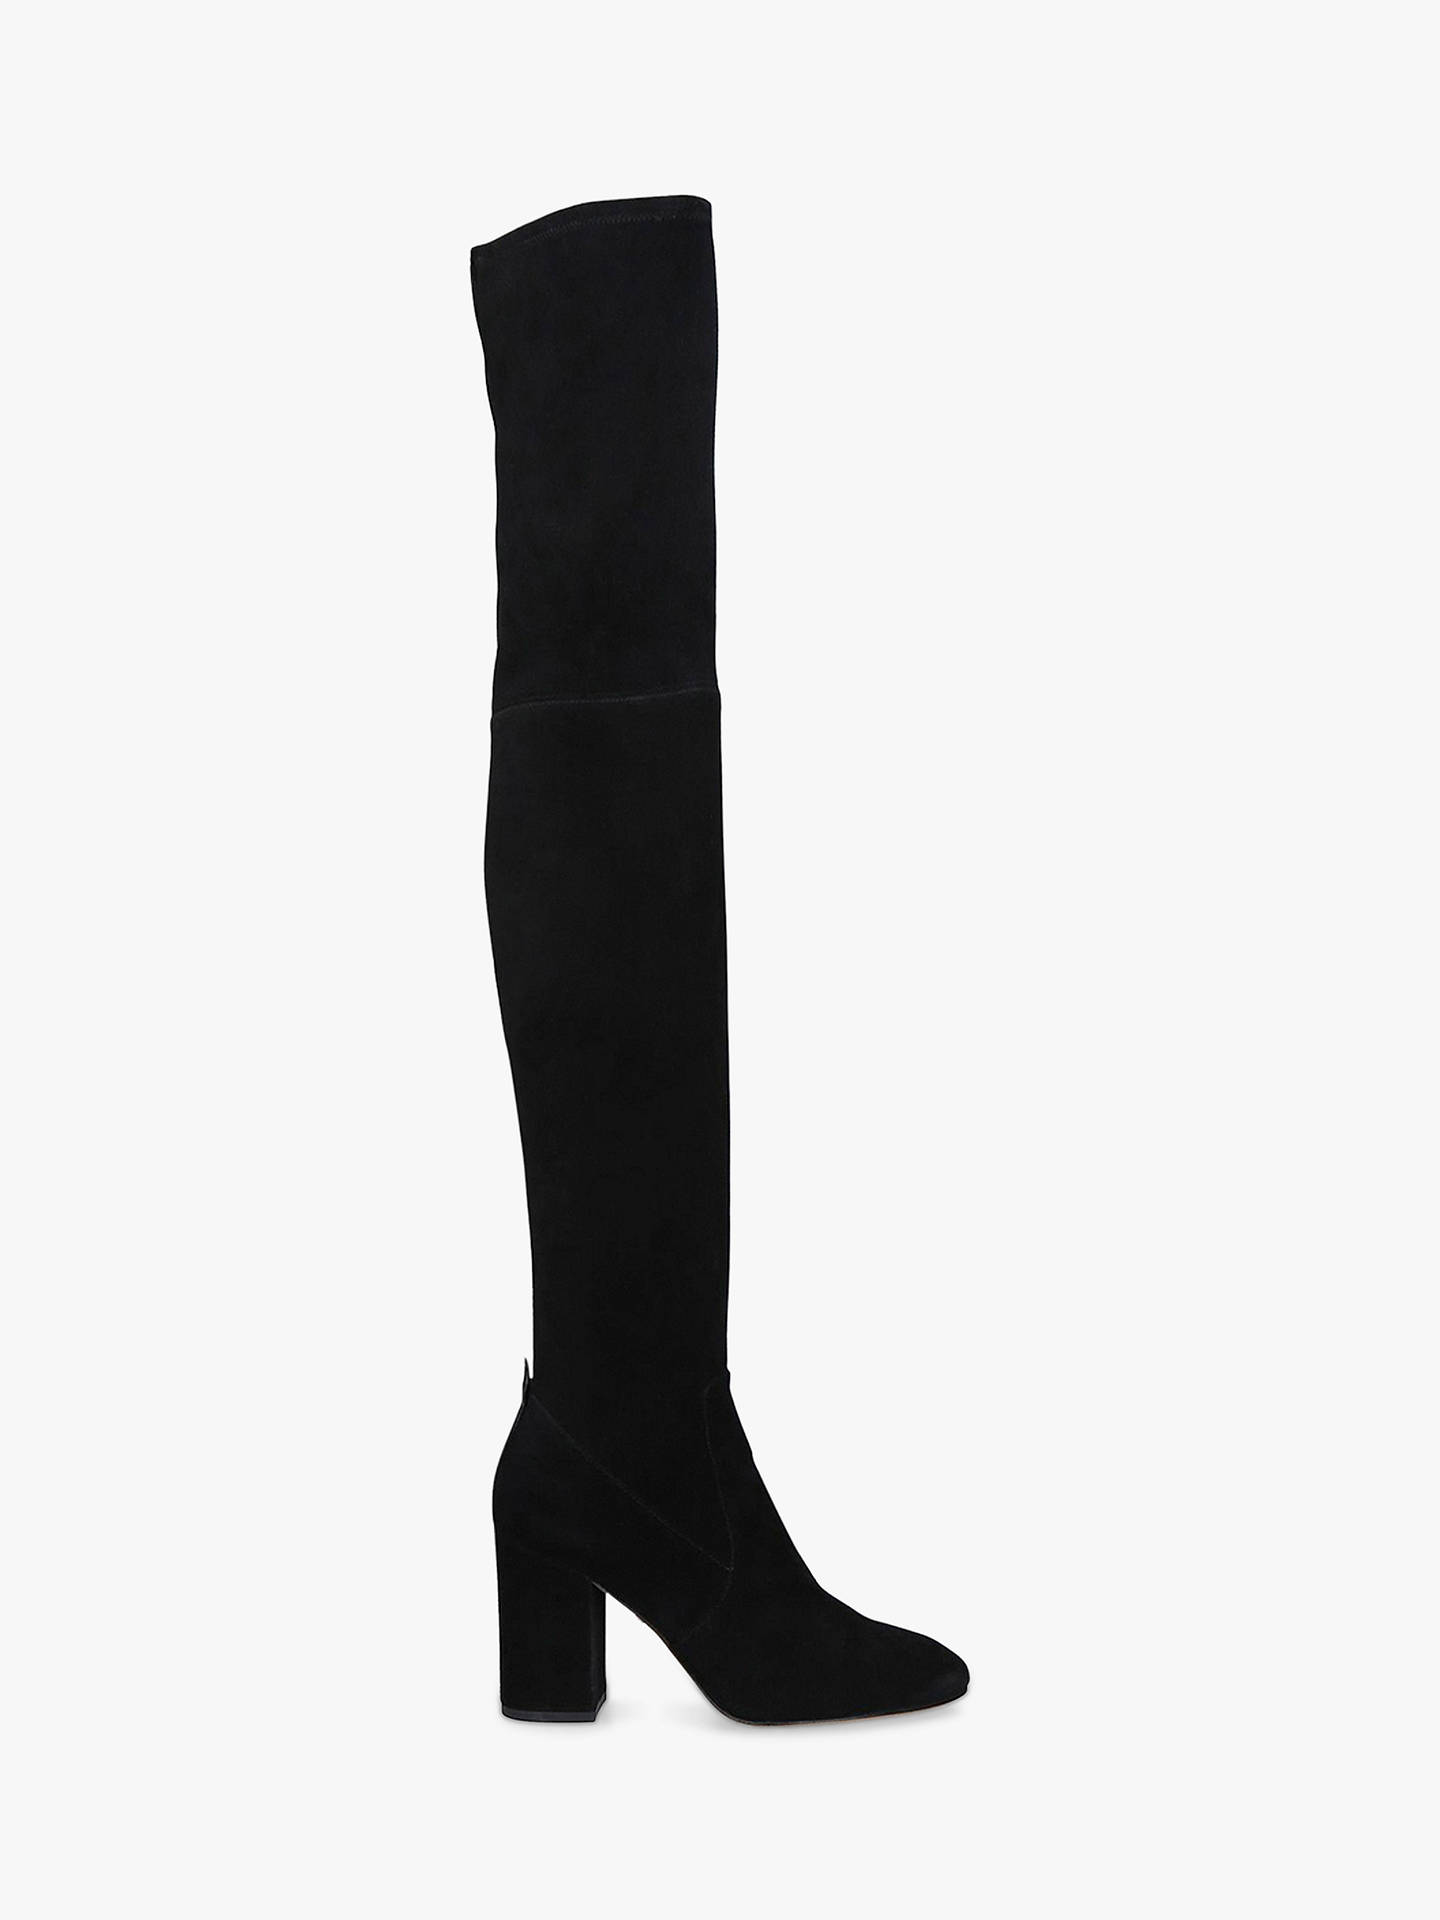 525390f8ddd Buy Coach Giselle Over The Knee Block Heel Boots